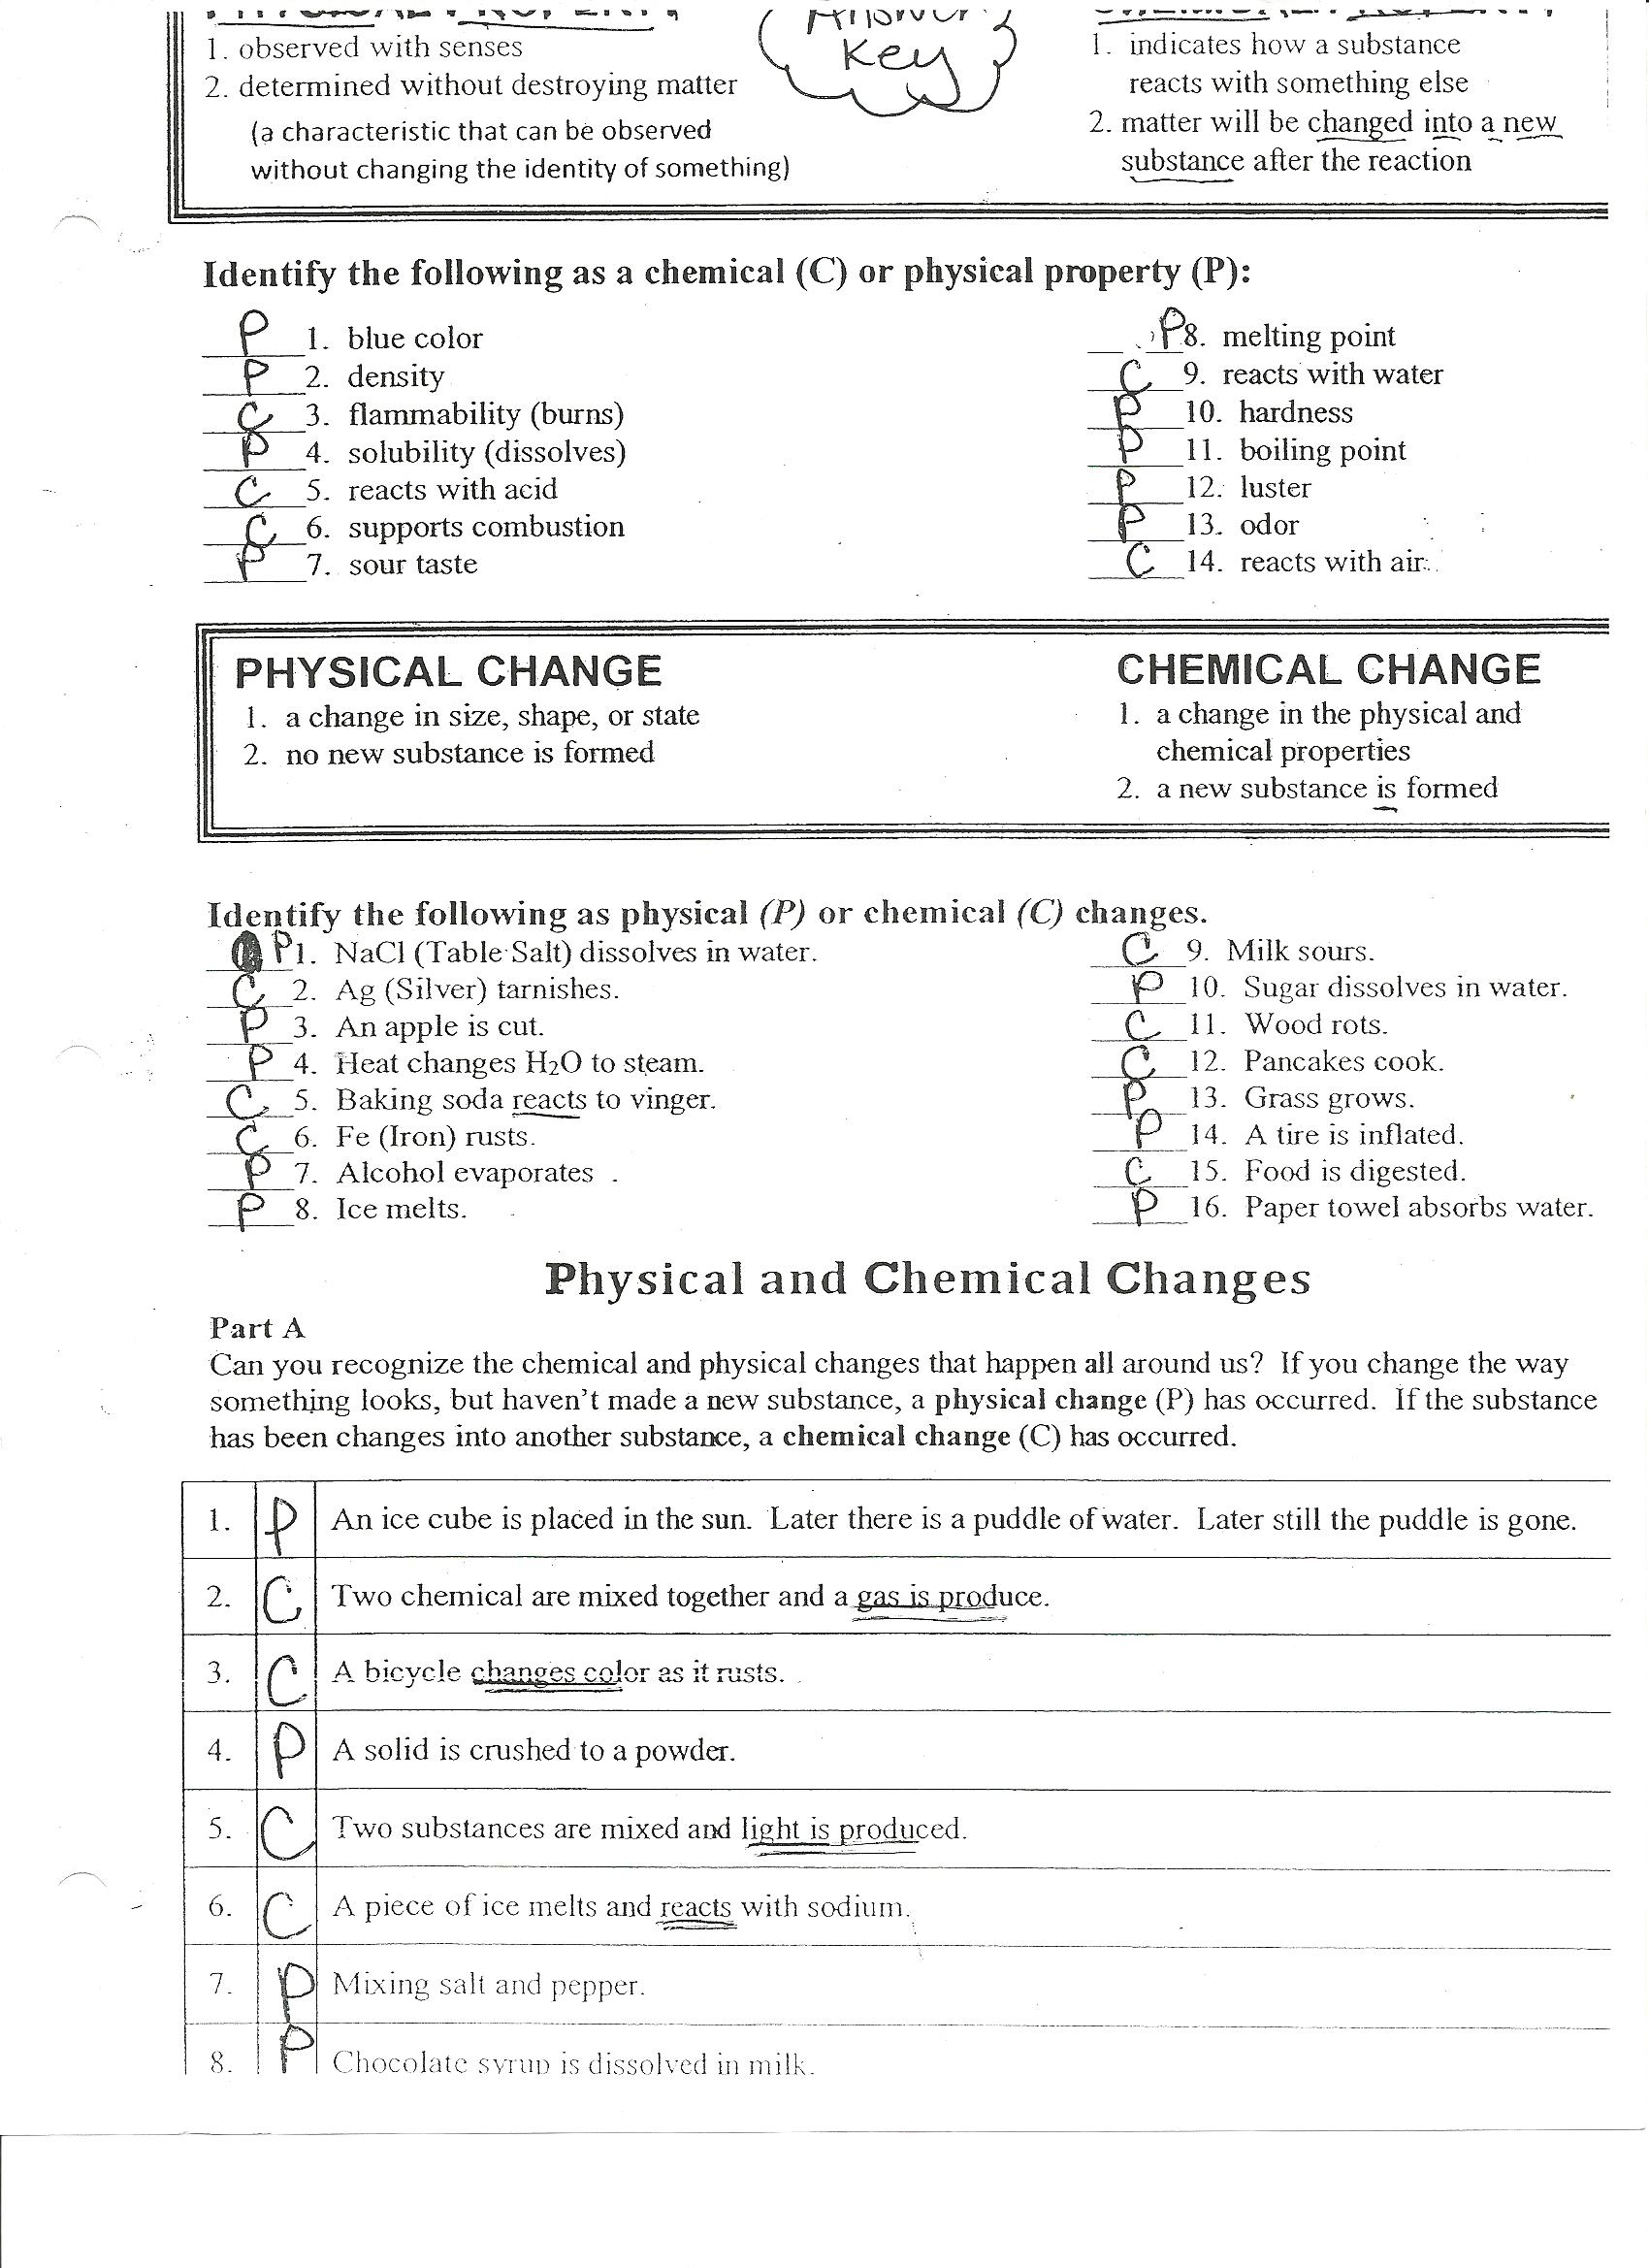 Worksheets Chemical And Physical Changes Worksheet Cheatslist Free Worksheets For Kids Amp Printable